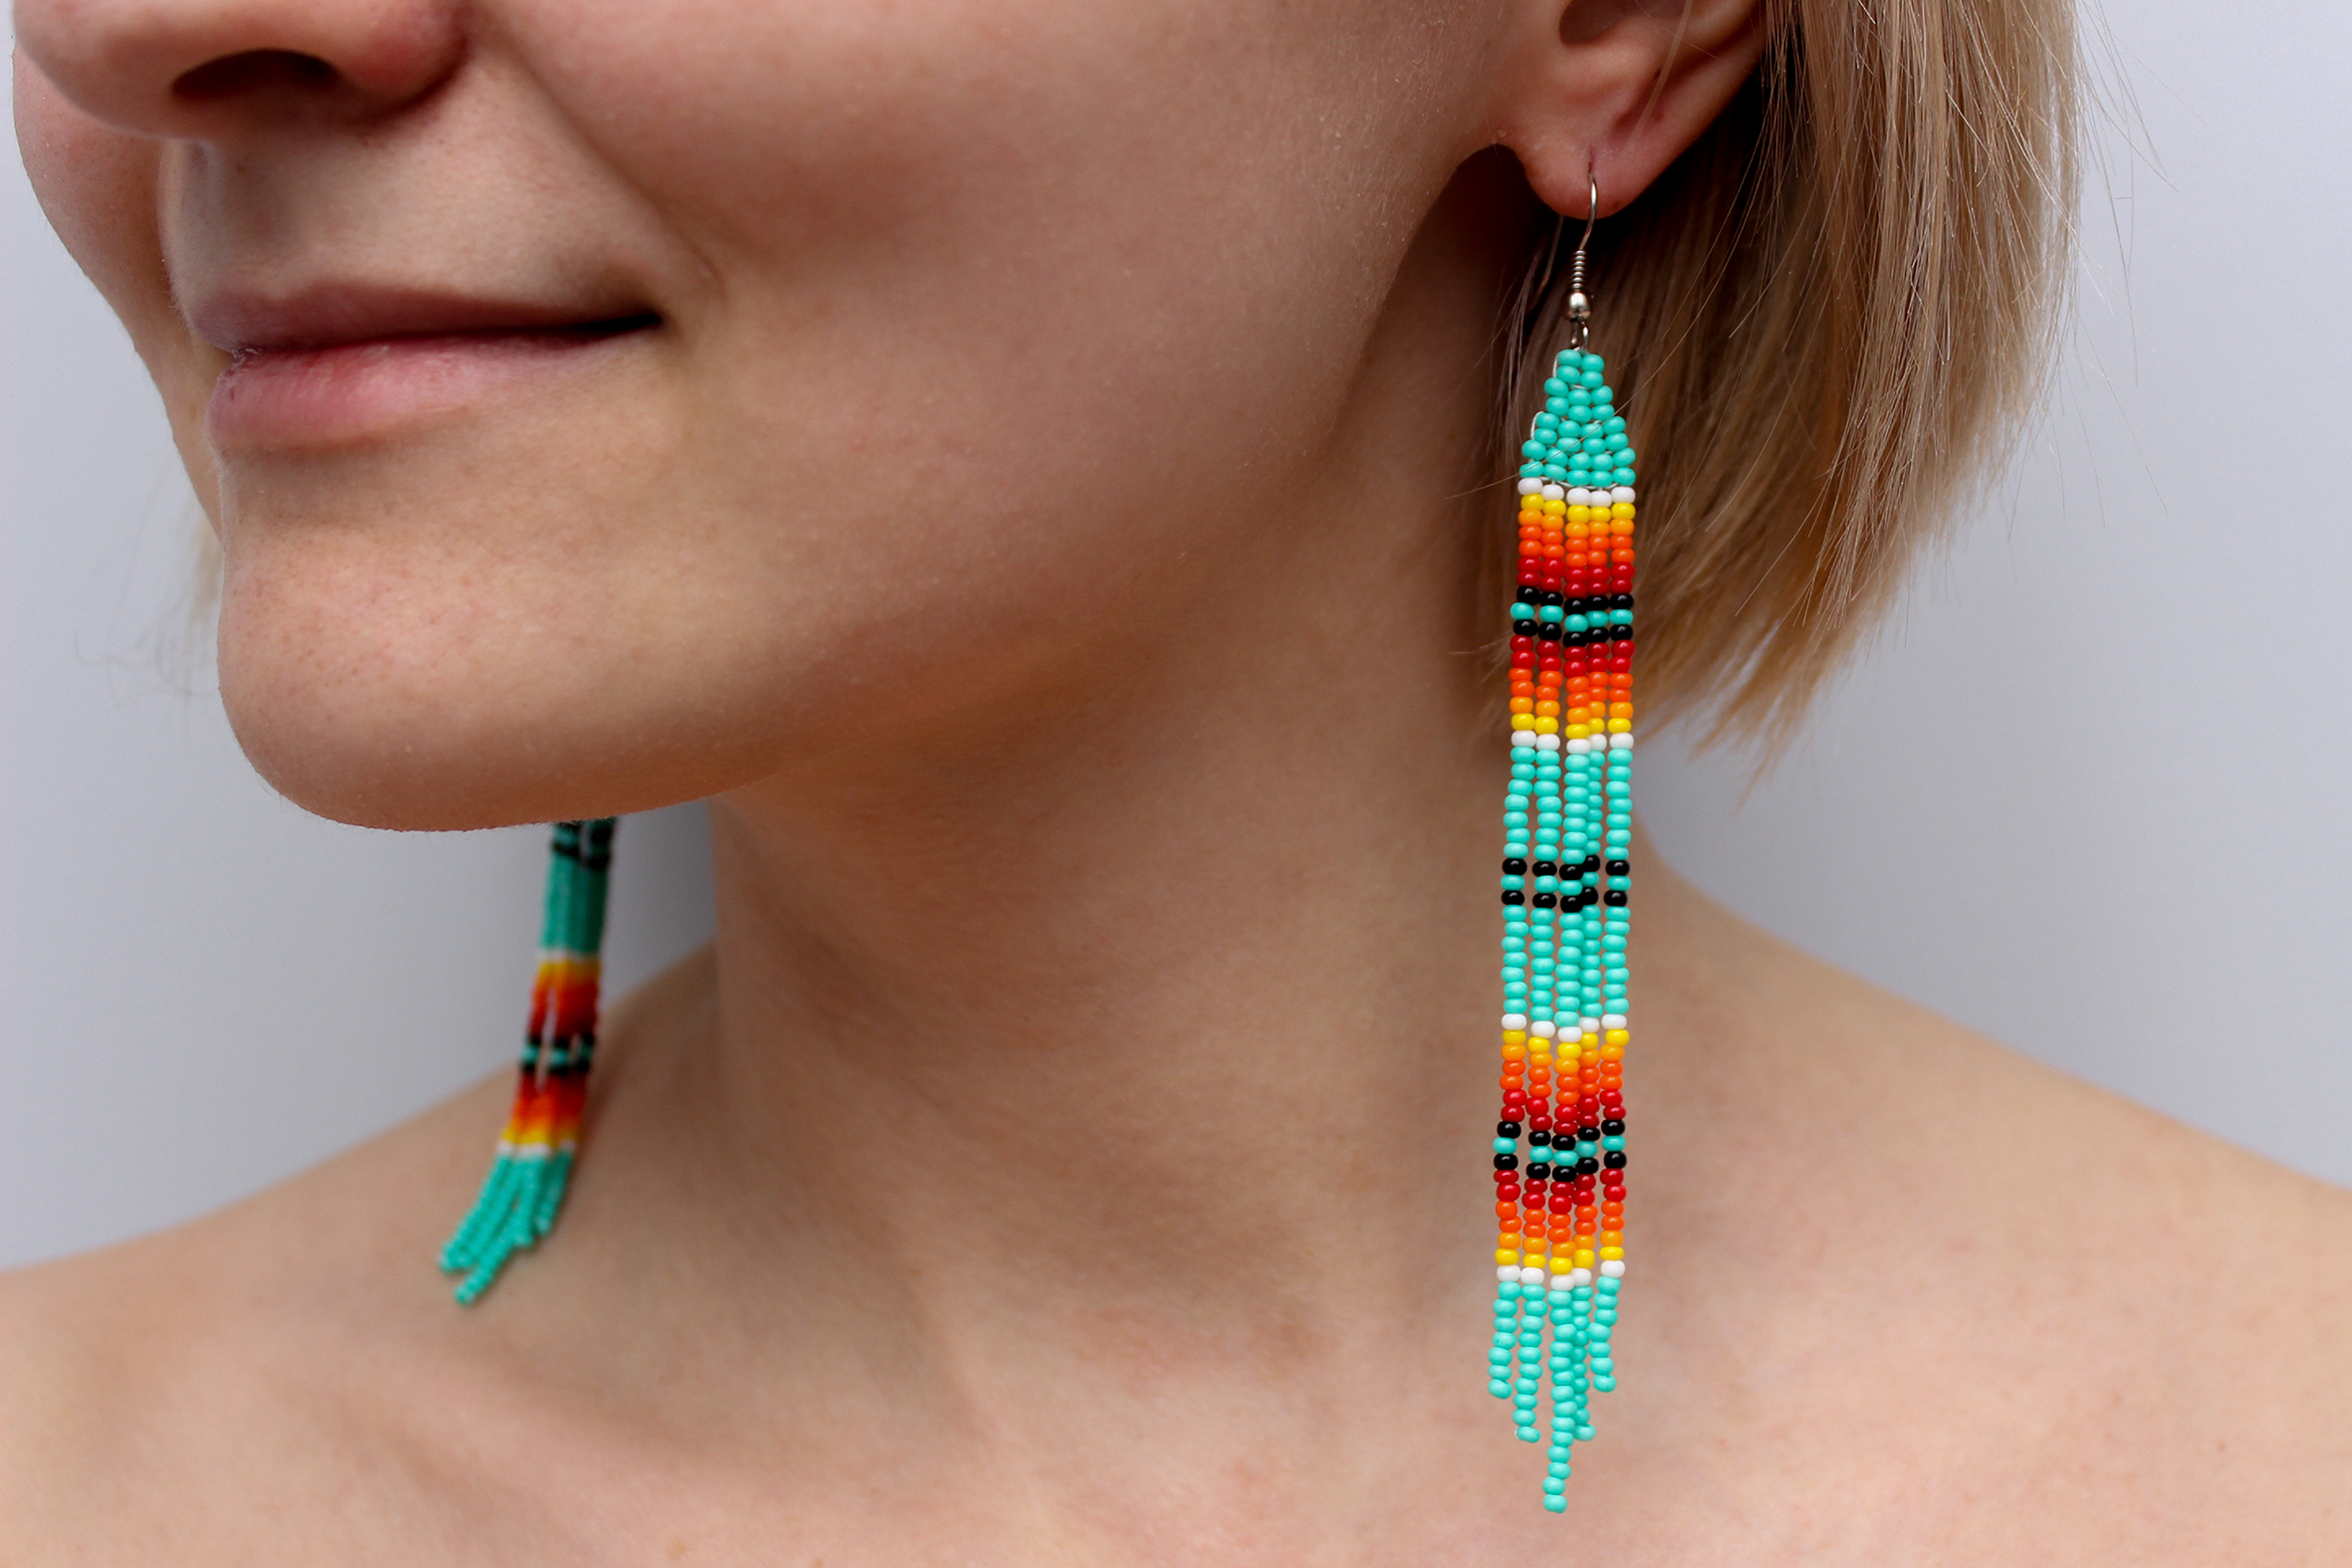 663d8bf2c7100 Details about Native American Style Earrings, American Indian Beaded  Earrings, Geometric Aztec